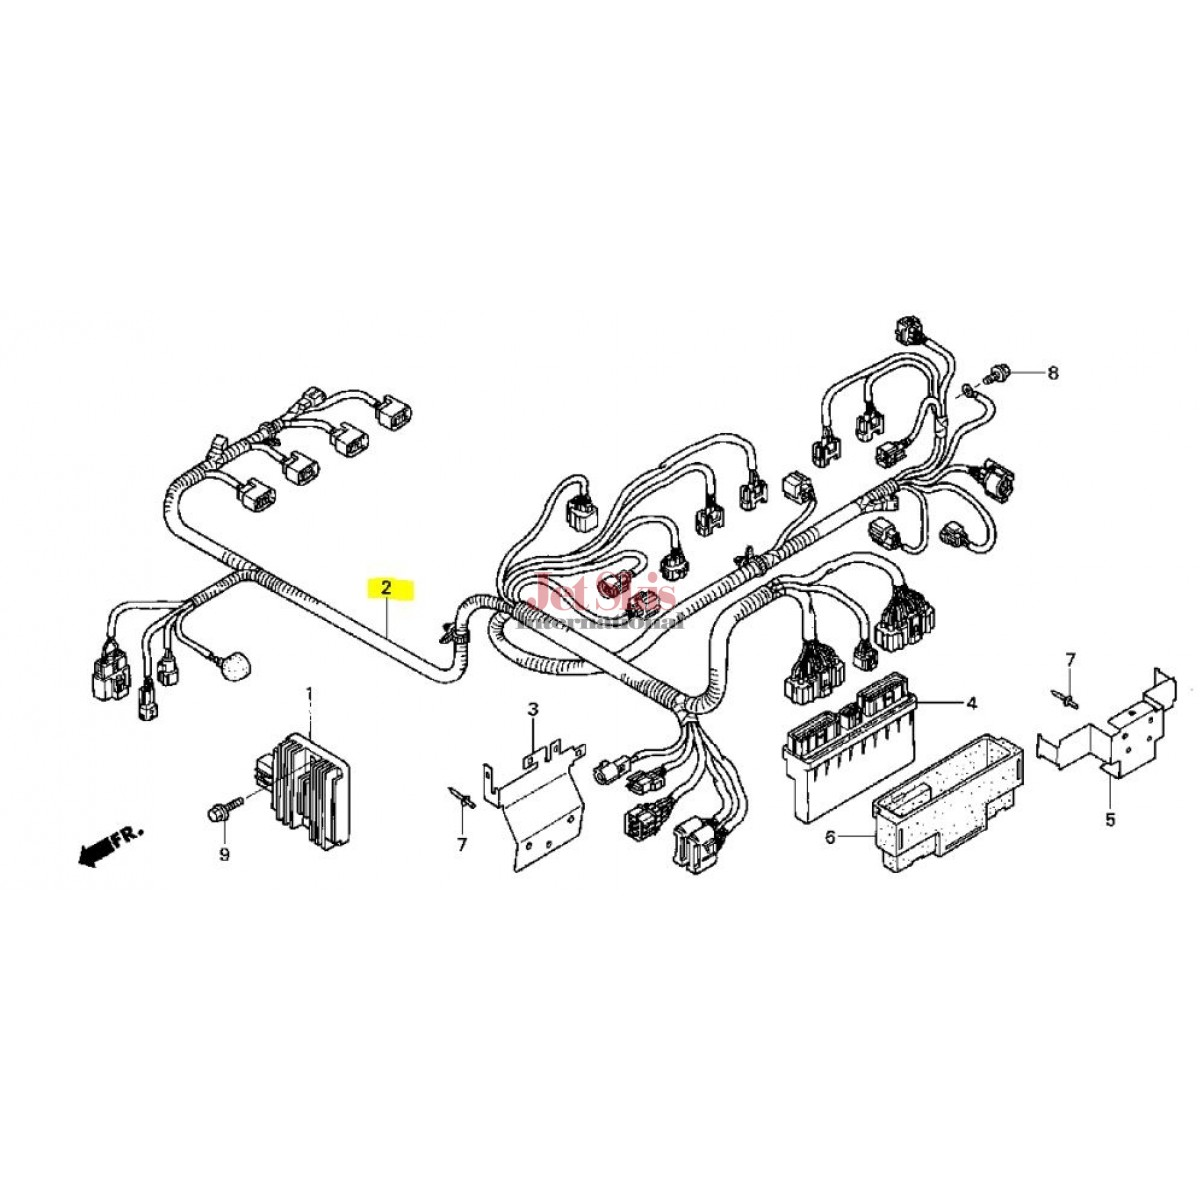 f 12x 2005 engine diagram